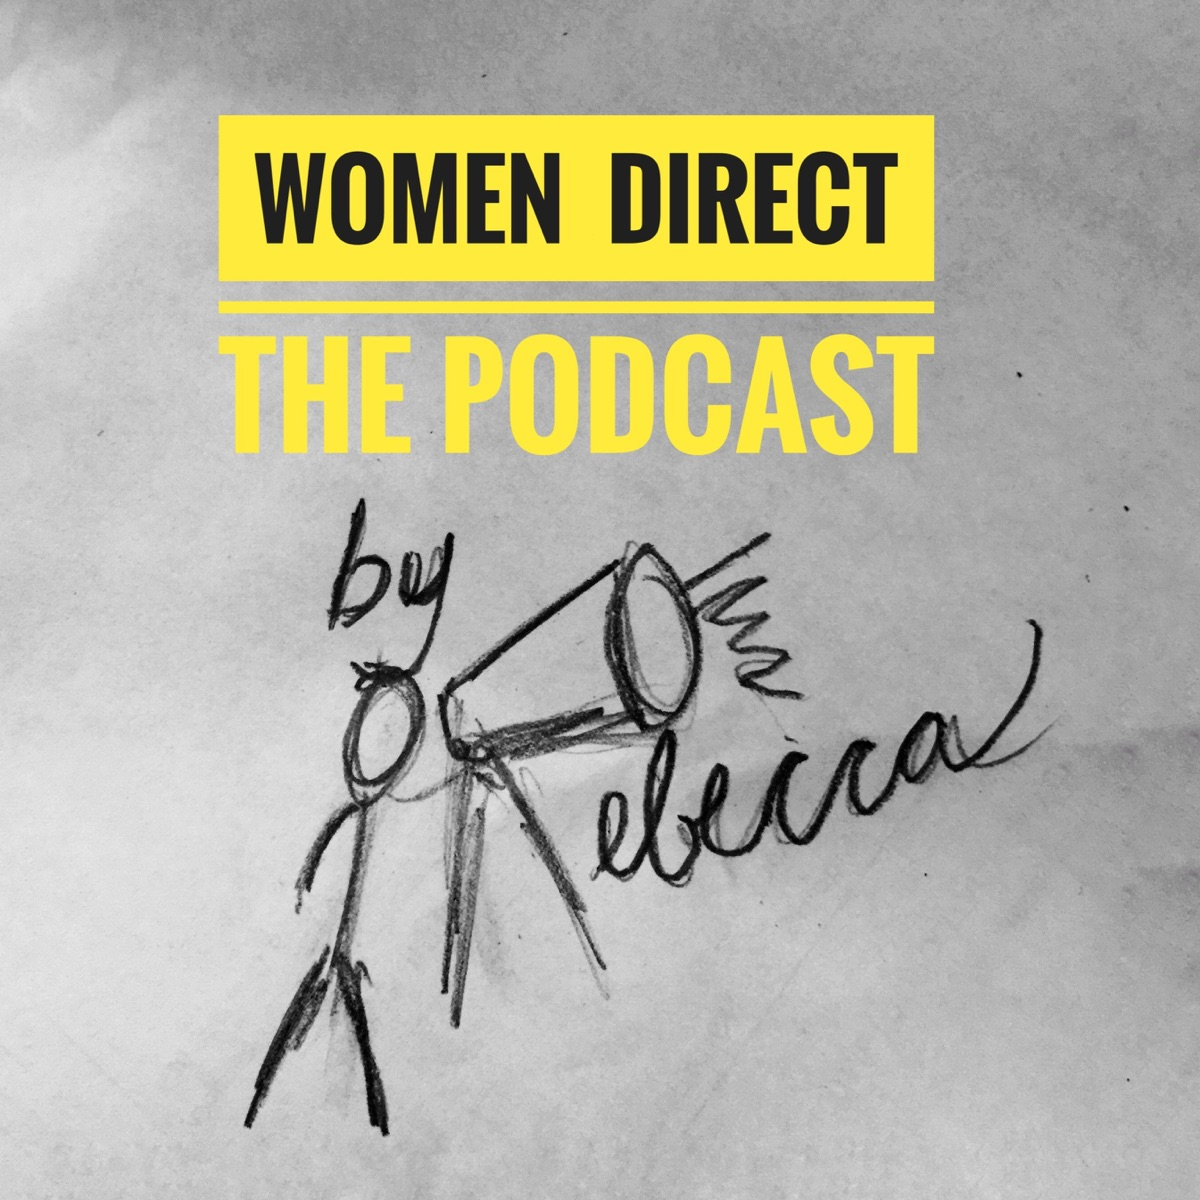 Women Direct the Podcast